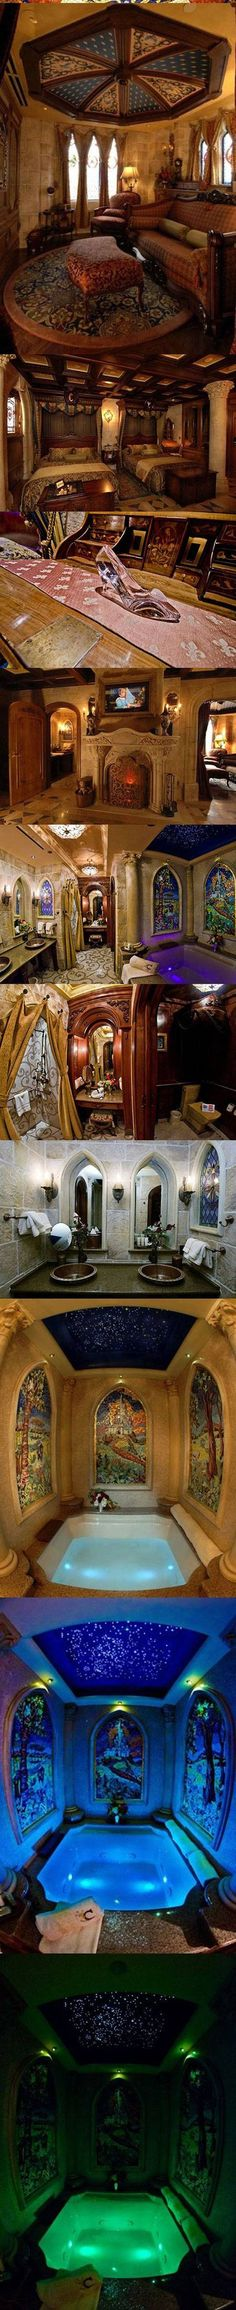 This is the beautiful suite inside Sleeping Beauty's castle i think??? I'm not sure if it is her's or Cinderella's castle.